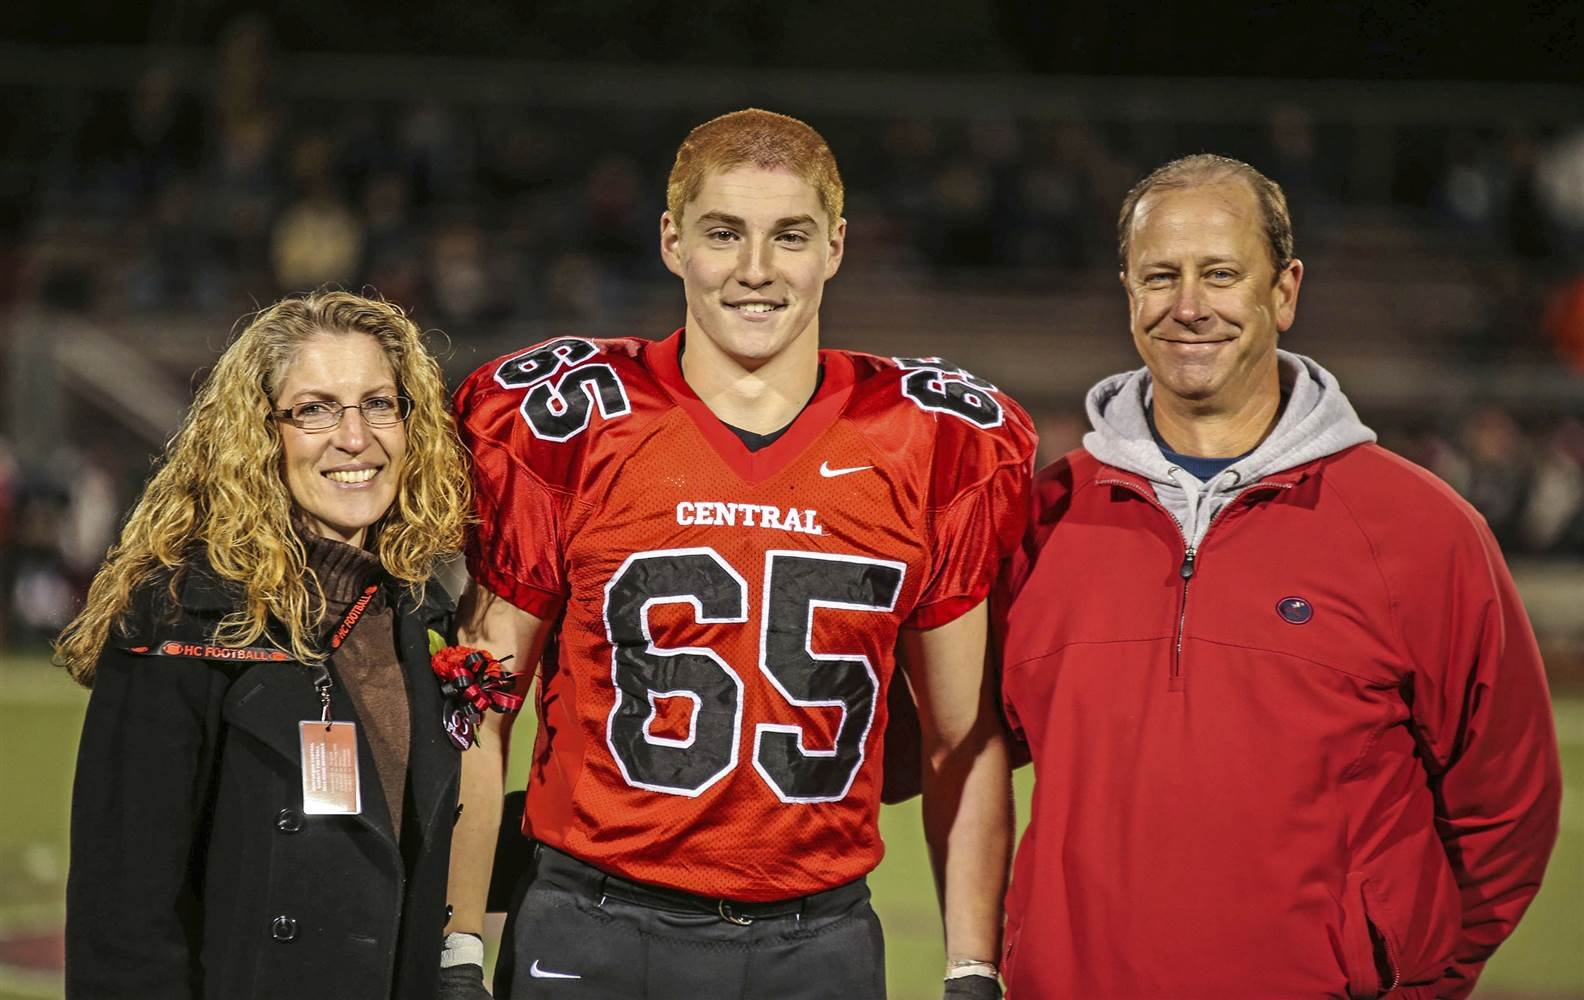 """Timothy Piazza, center, with his parents Evelyn Piazza, left, and James Piazza, right, during Hunterdon Central Regional High School football's """"Senior Night"""" at the high school's stadium in Flemington, New Jersey."""